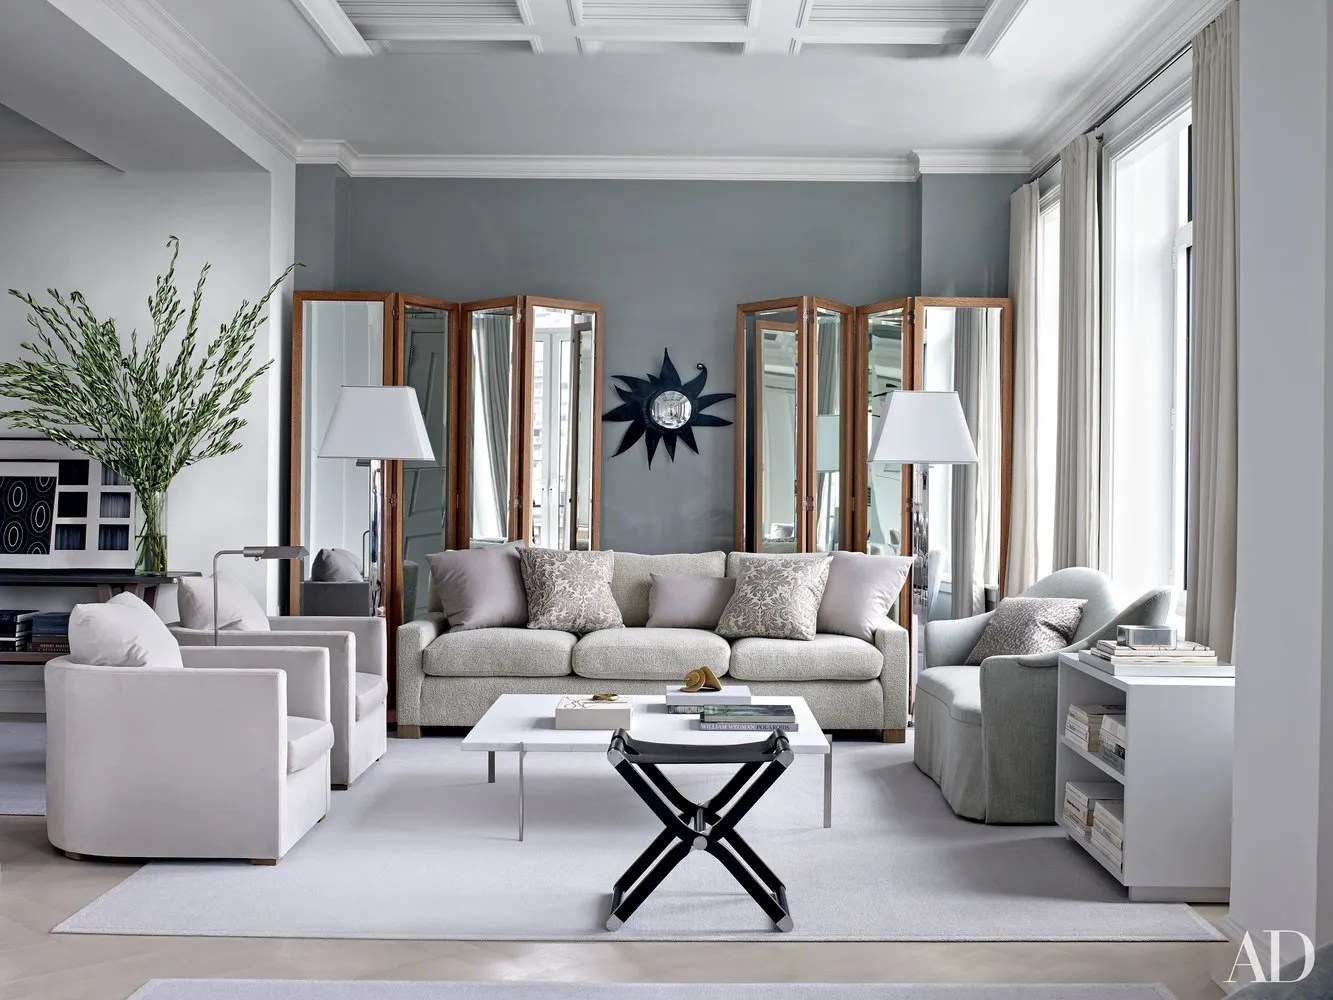 A Living Room Design What Not To Do When Decorating With Gray Architectural Digest